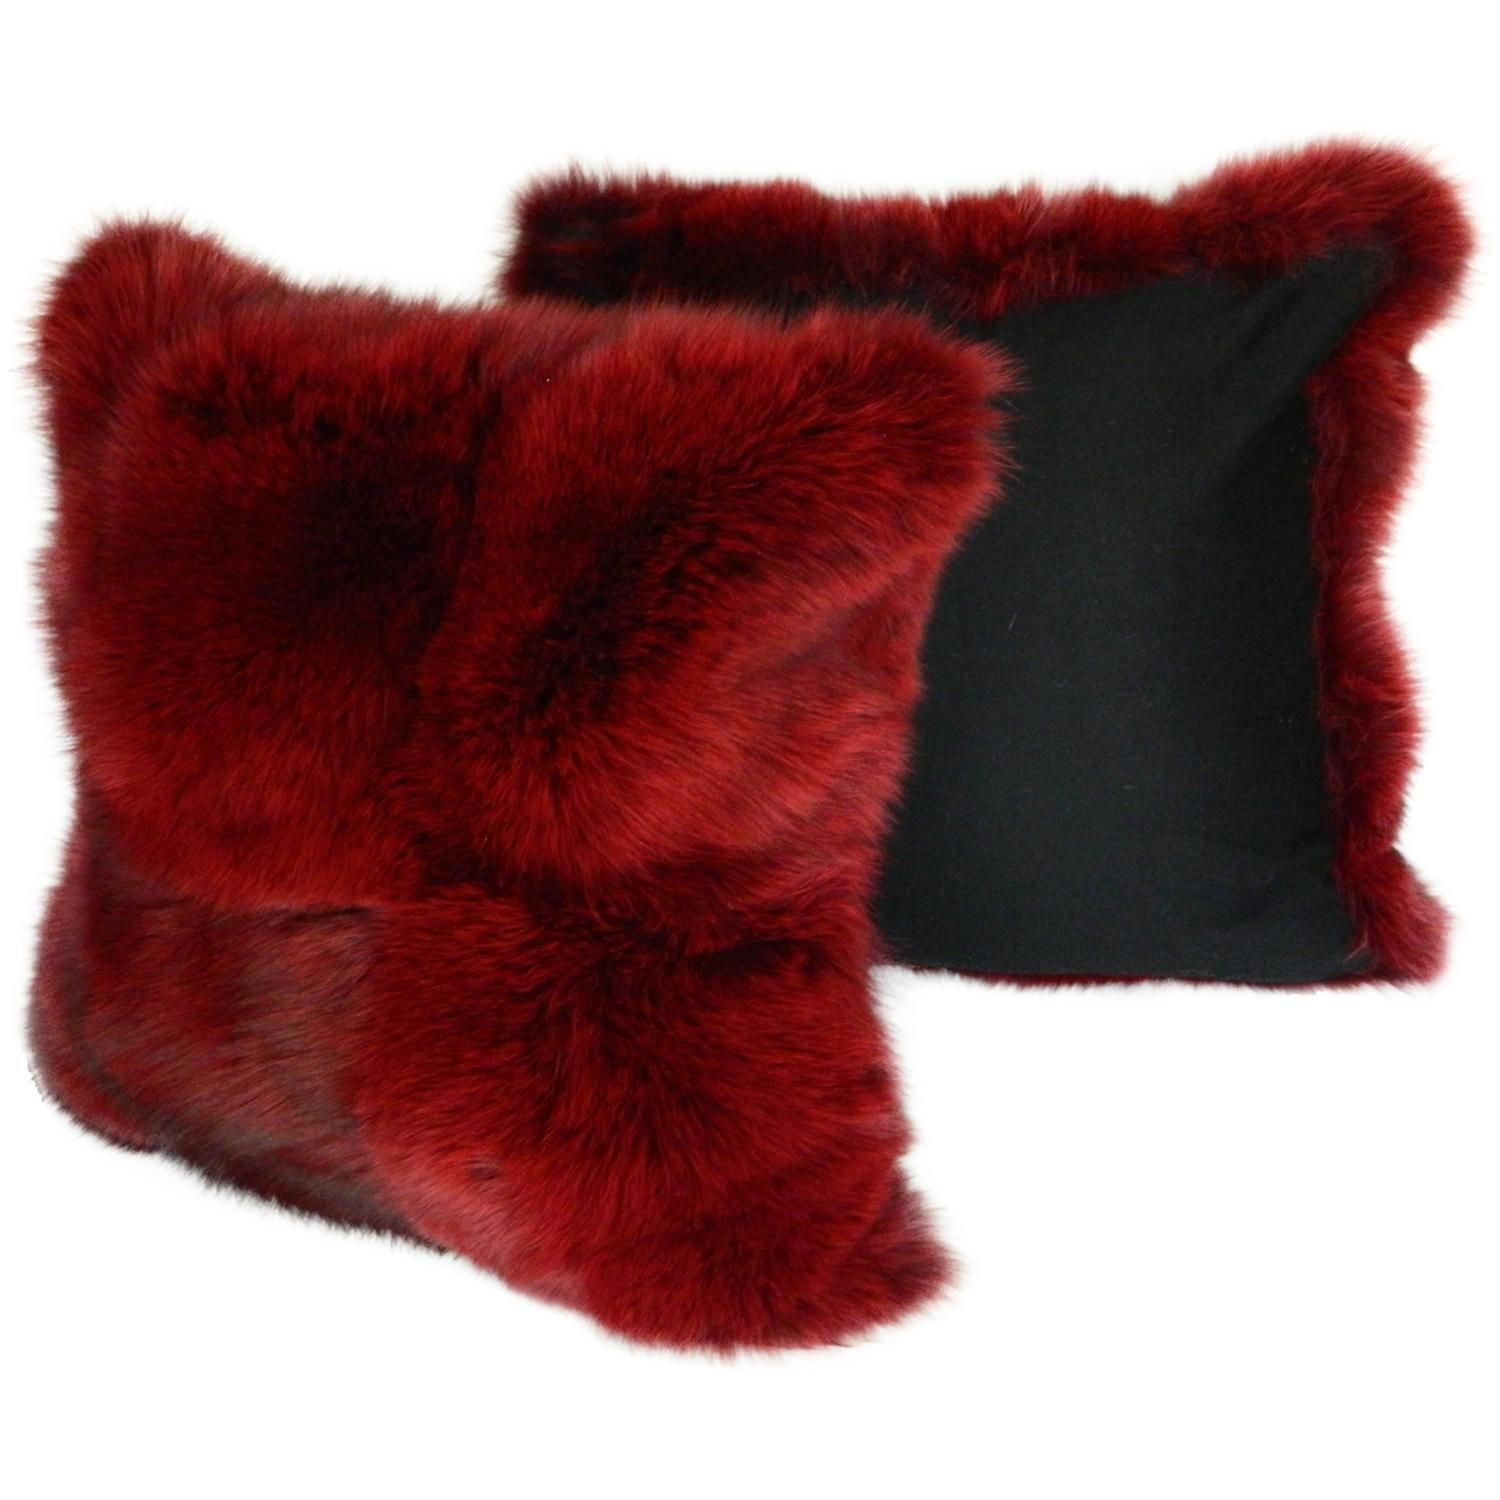 Pair Of Beautiful Burgundy Fox Pillow For Sale At 1stdibs